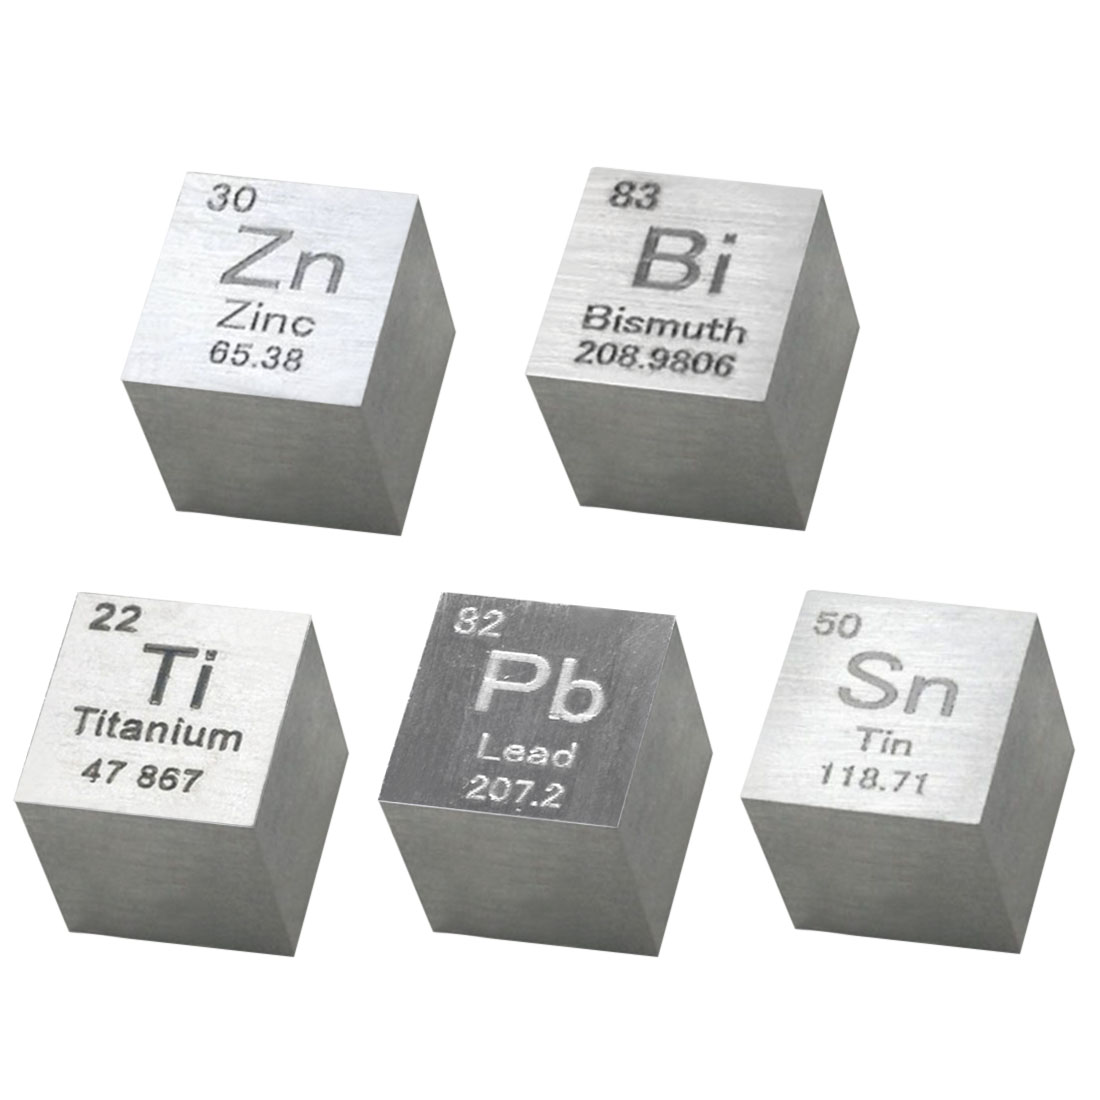 7science toy elements